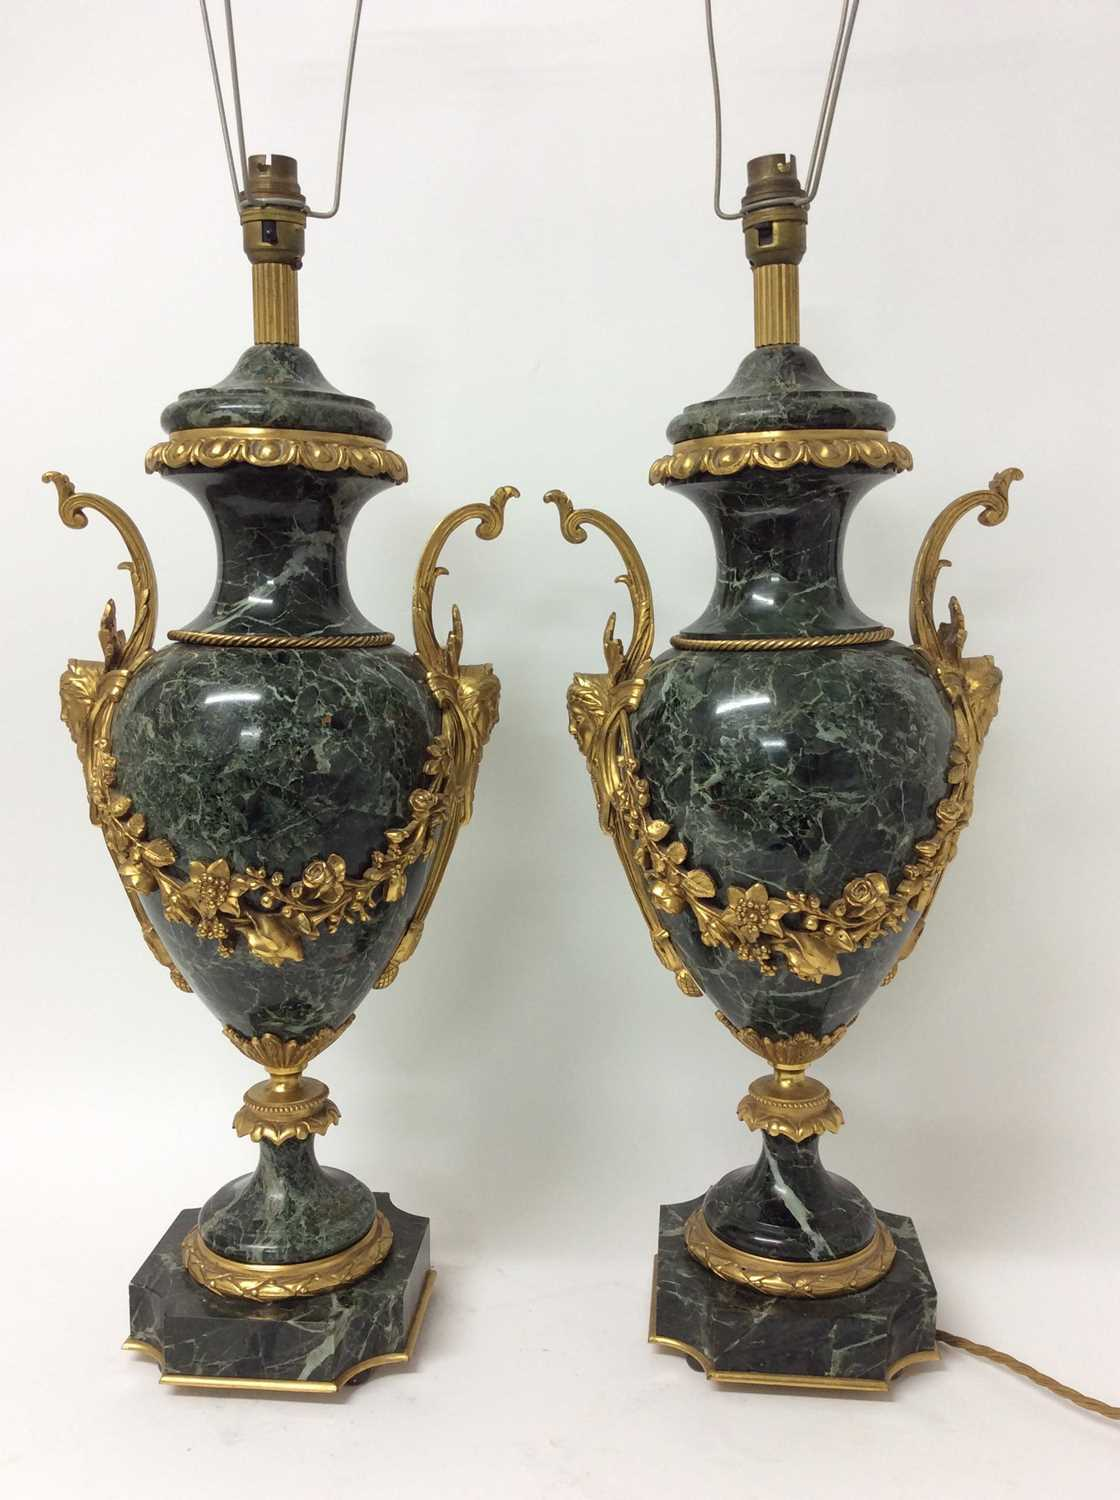 Pair of 18th century style gilt metal mounted verde antico marble table lamps, each of urn form with - Image 6 of 7